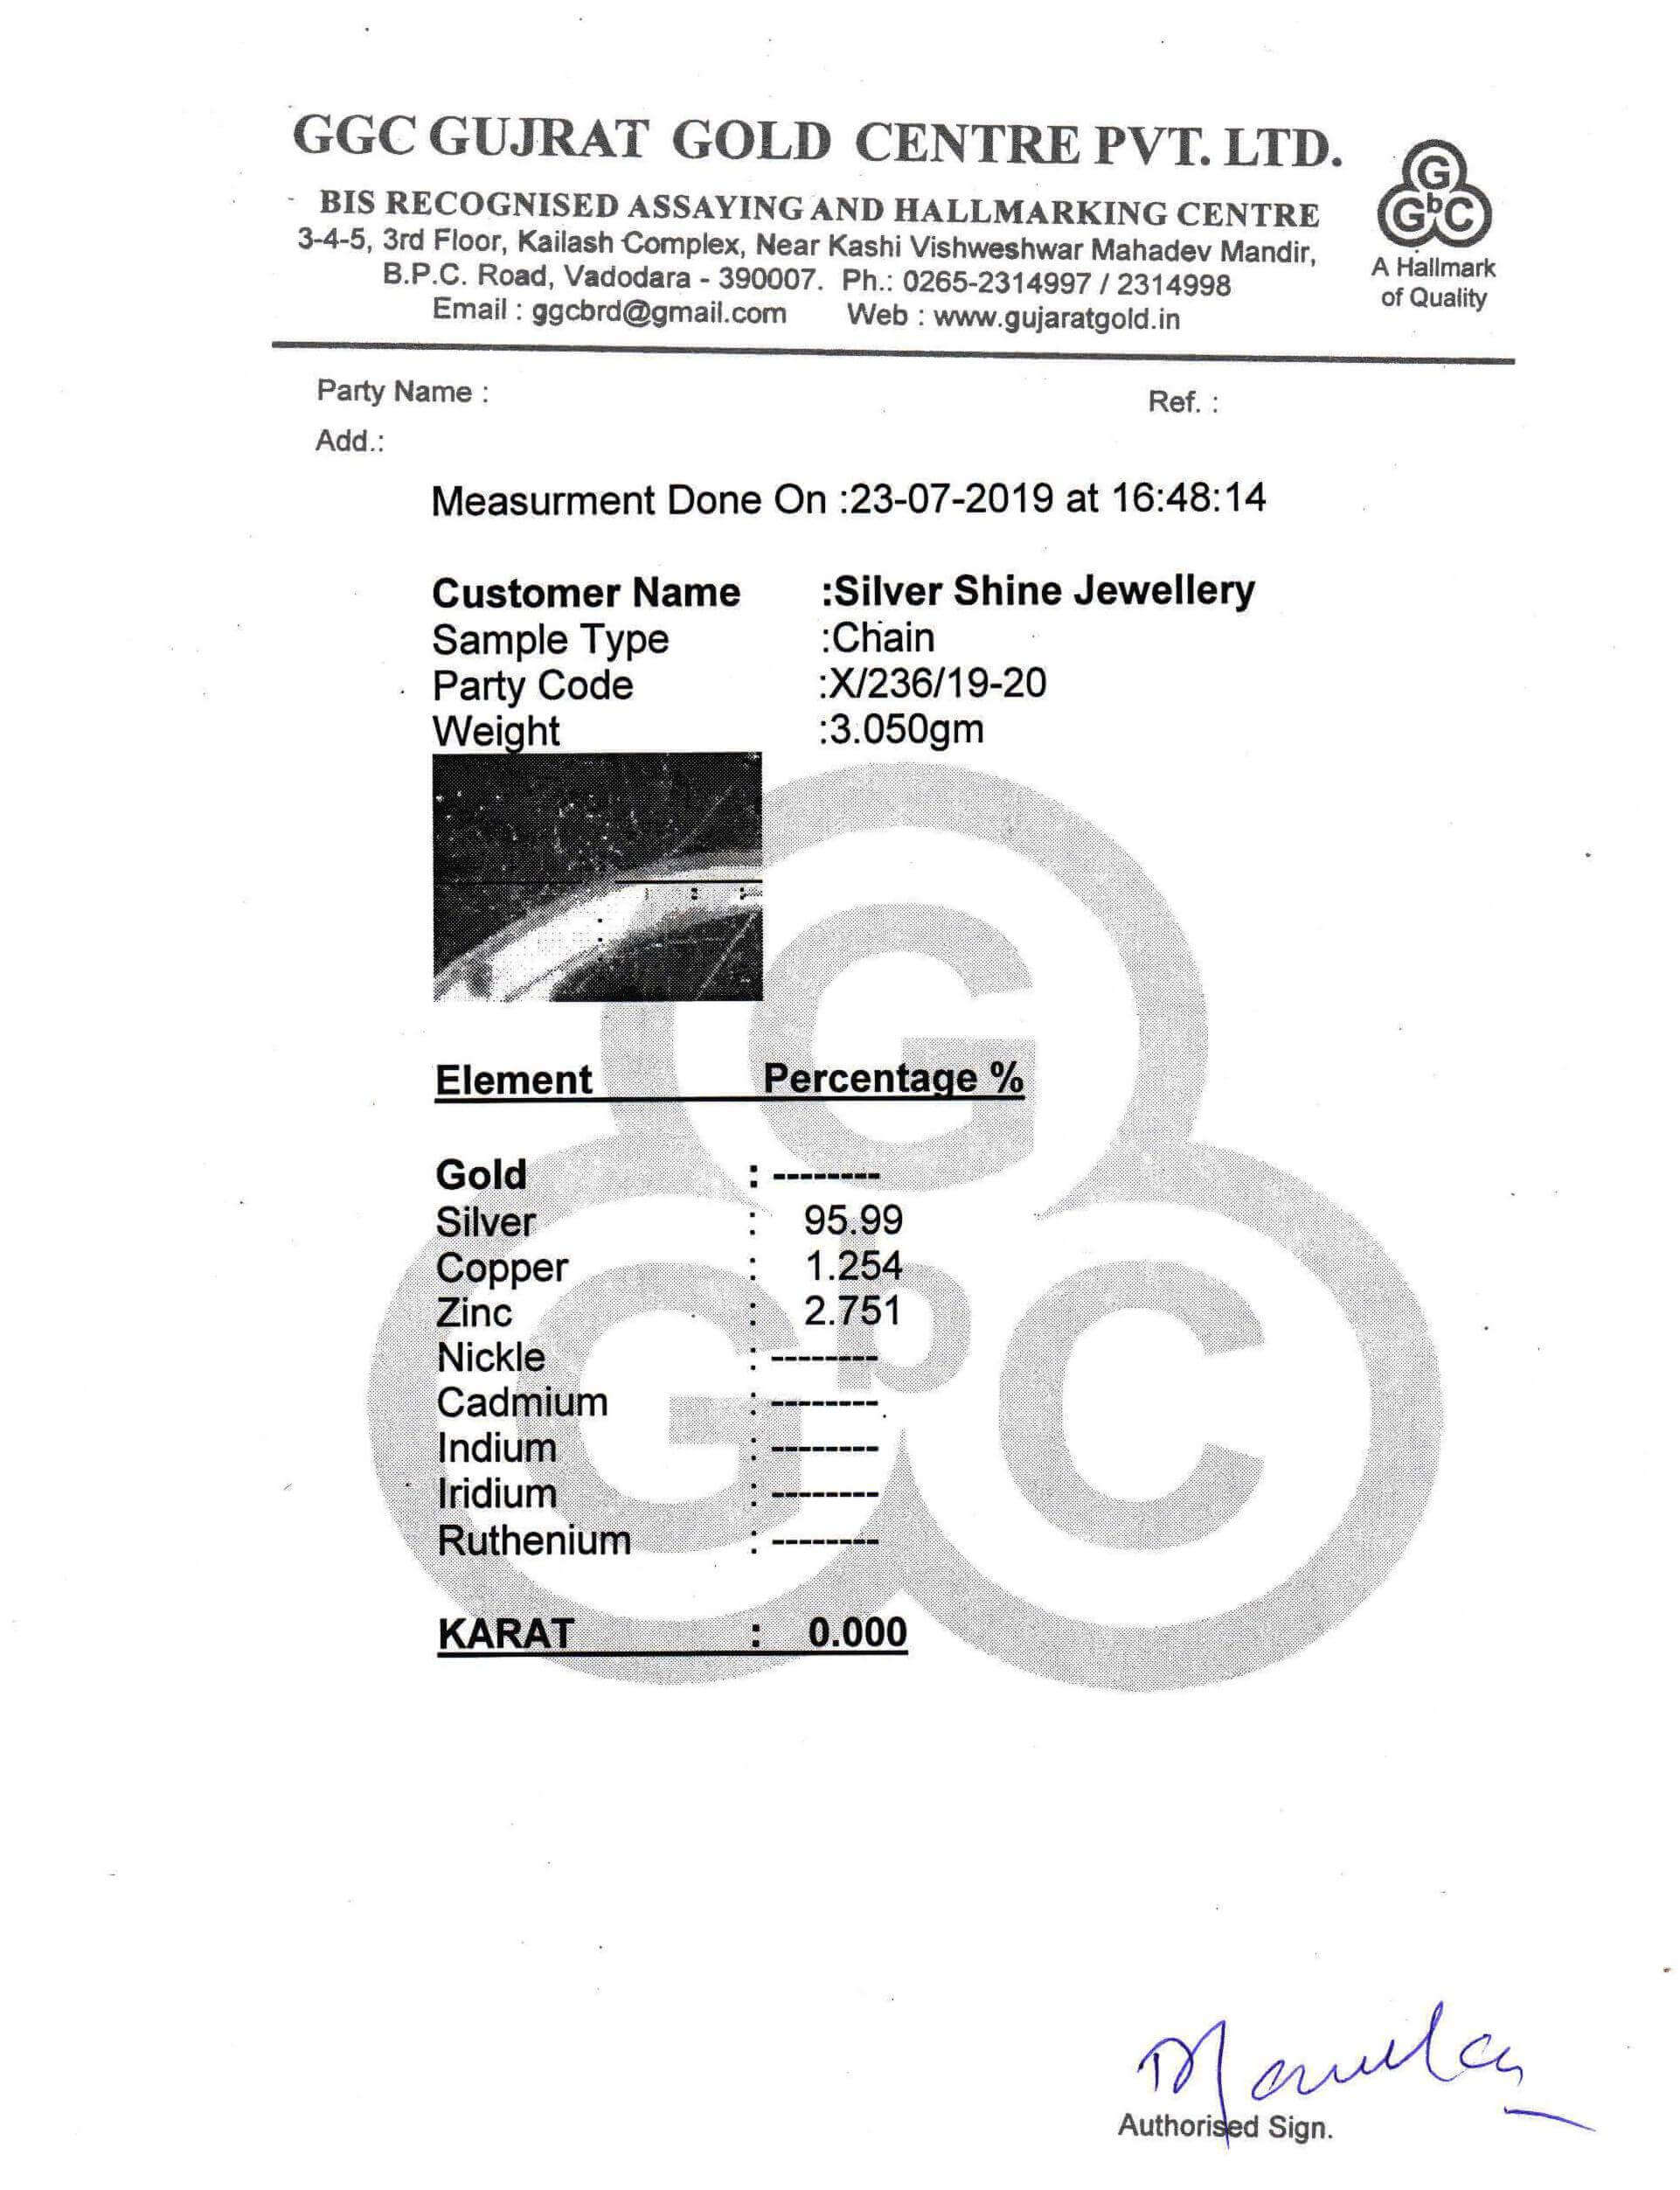 Purity_Certificate_Silver_Shine_3